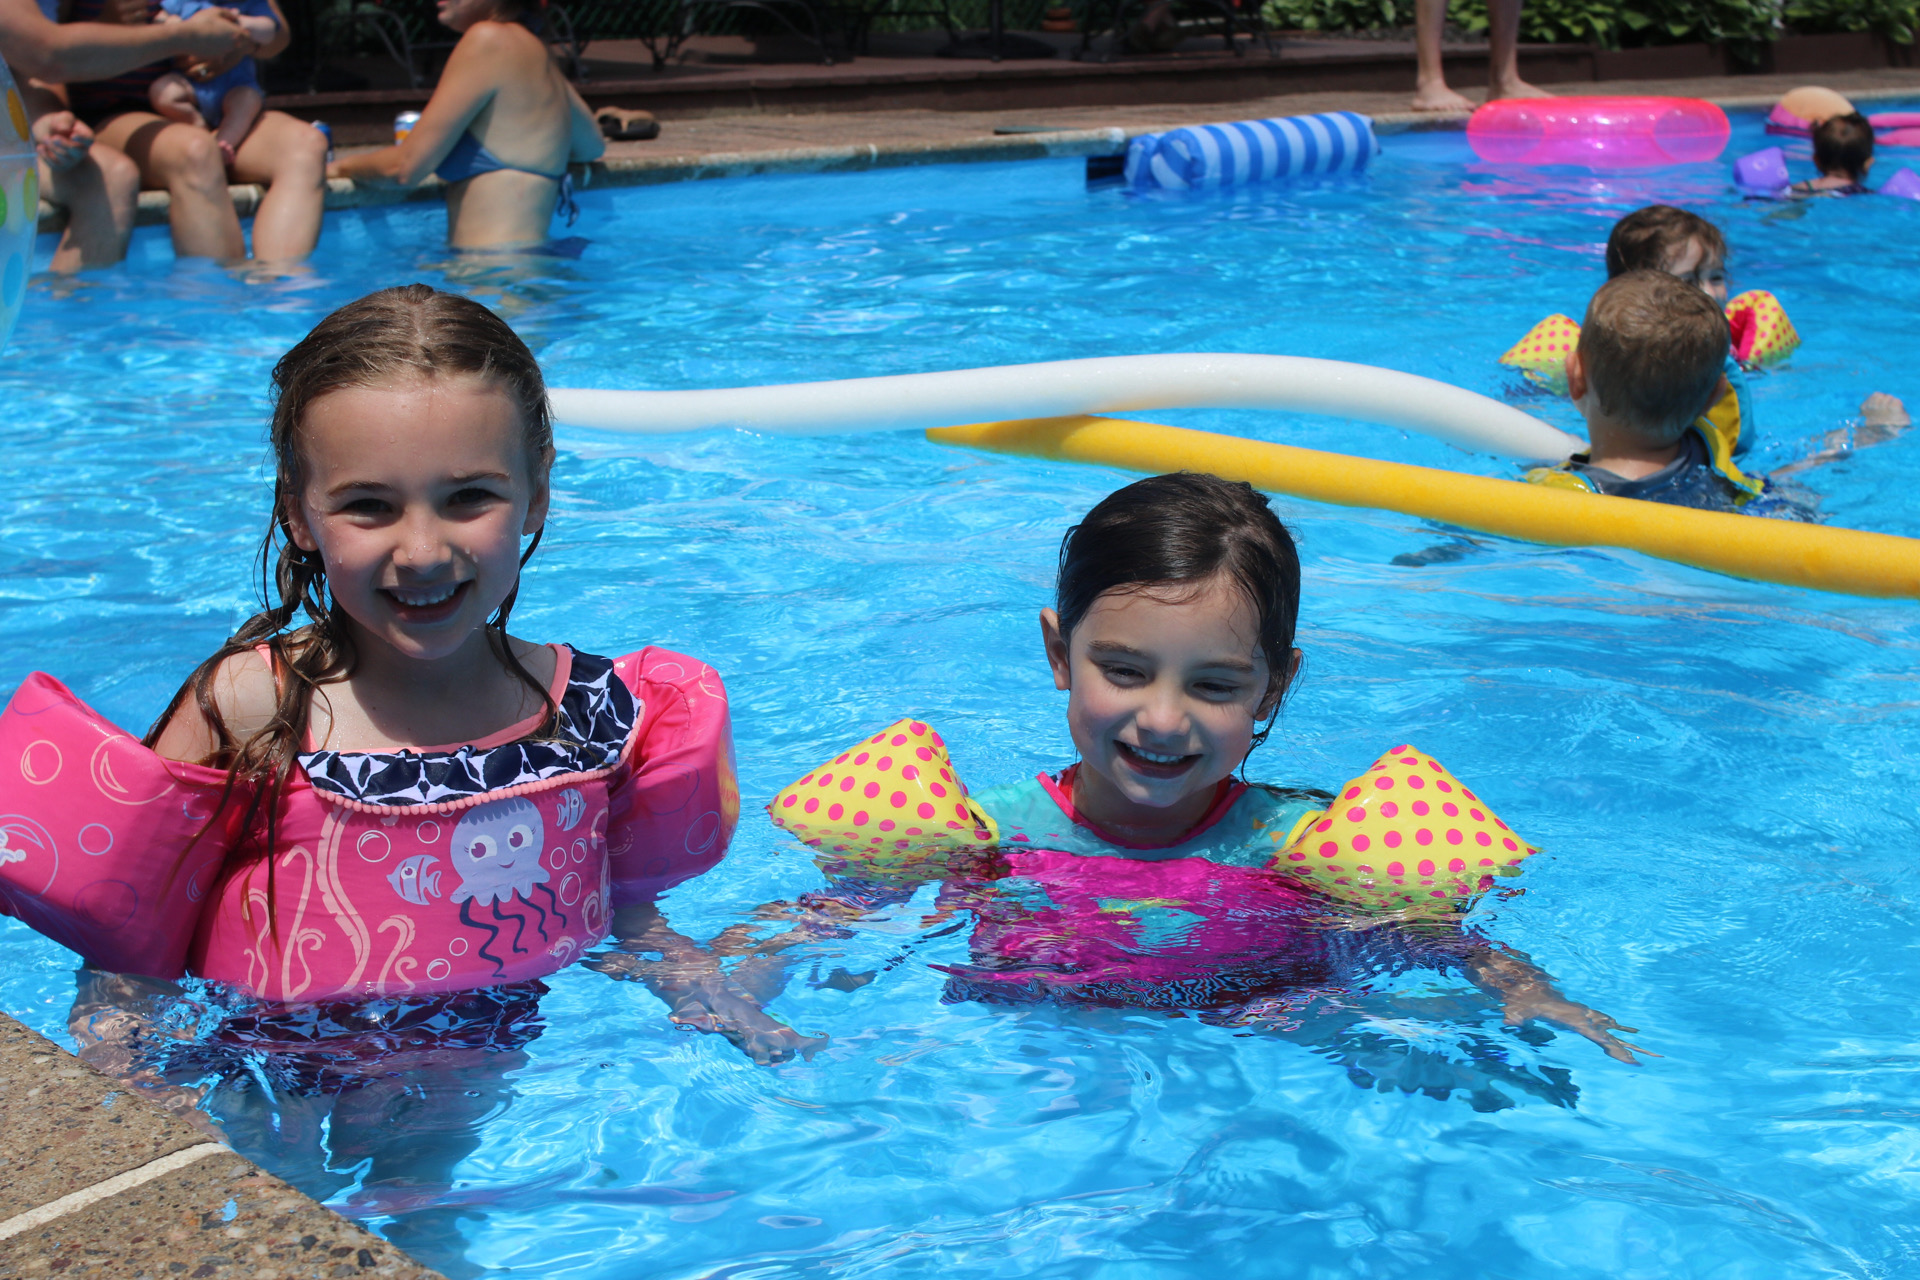 Little Girls Swimming with Puddle Jumpers